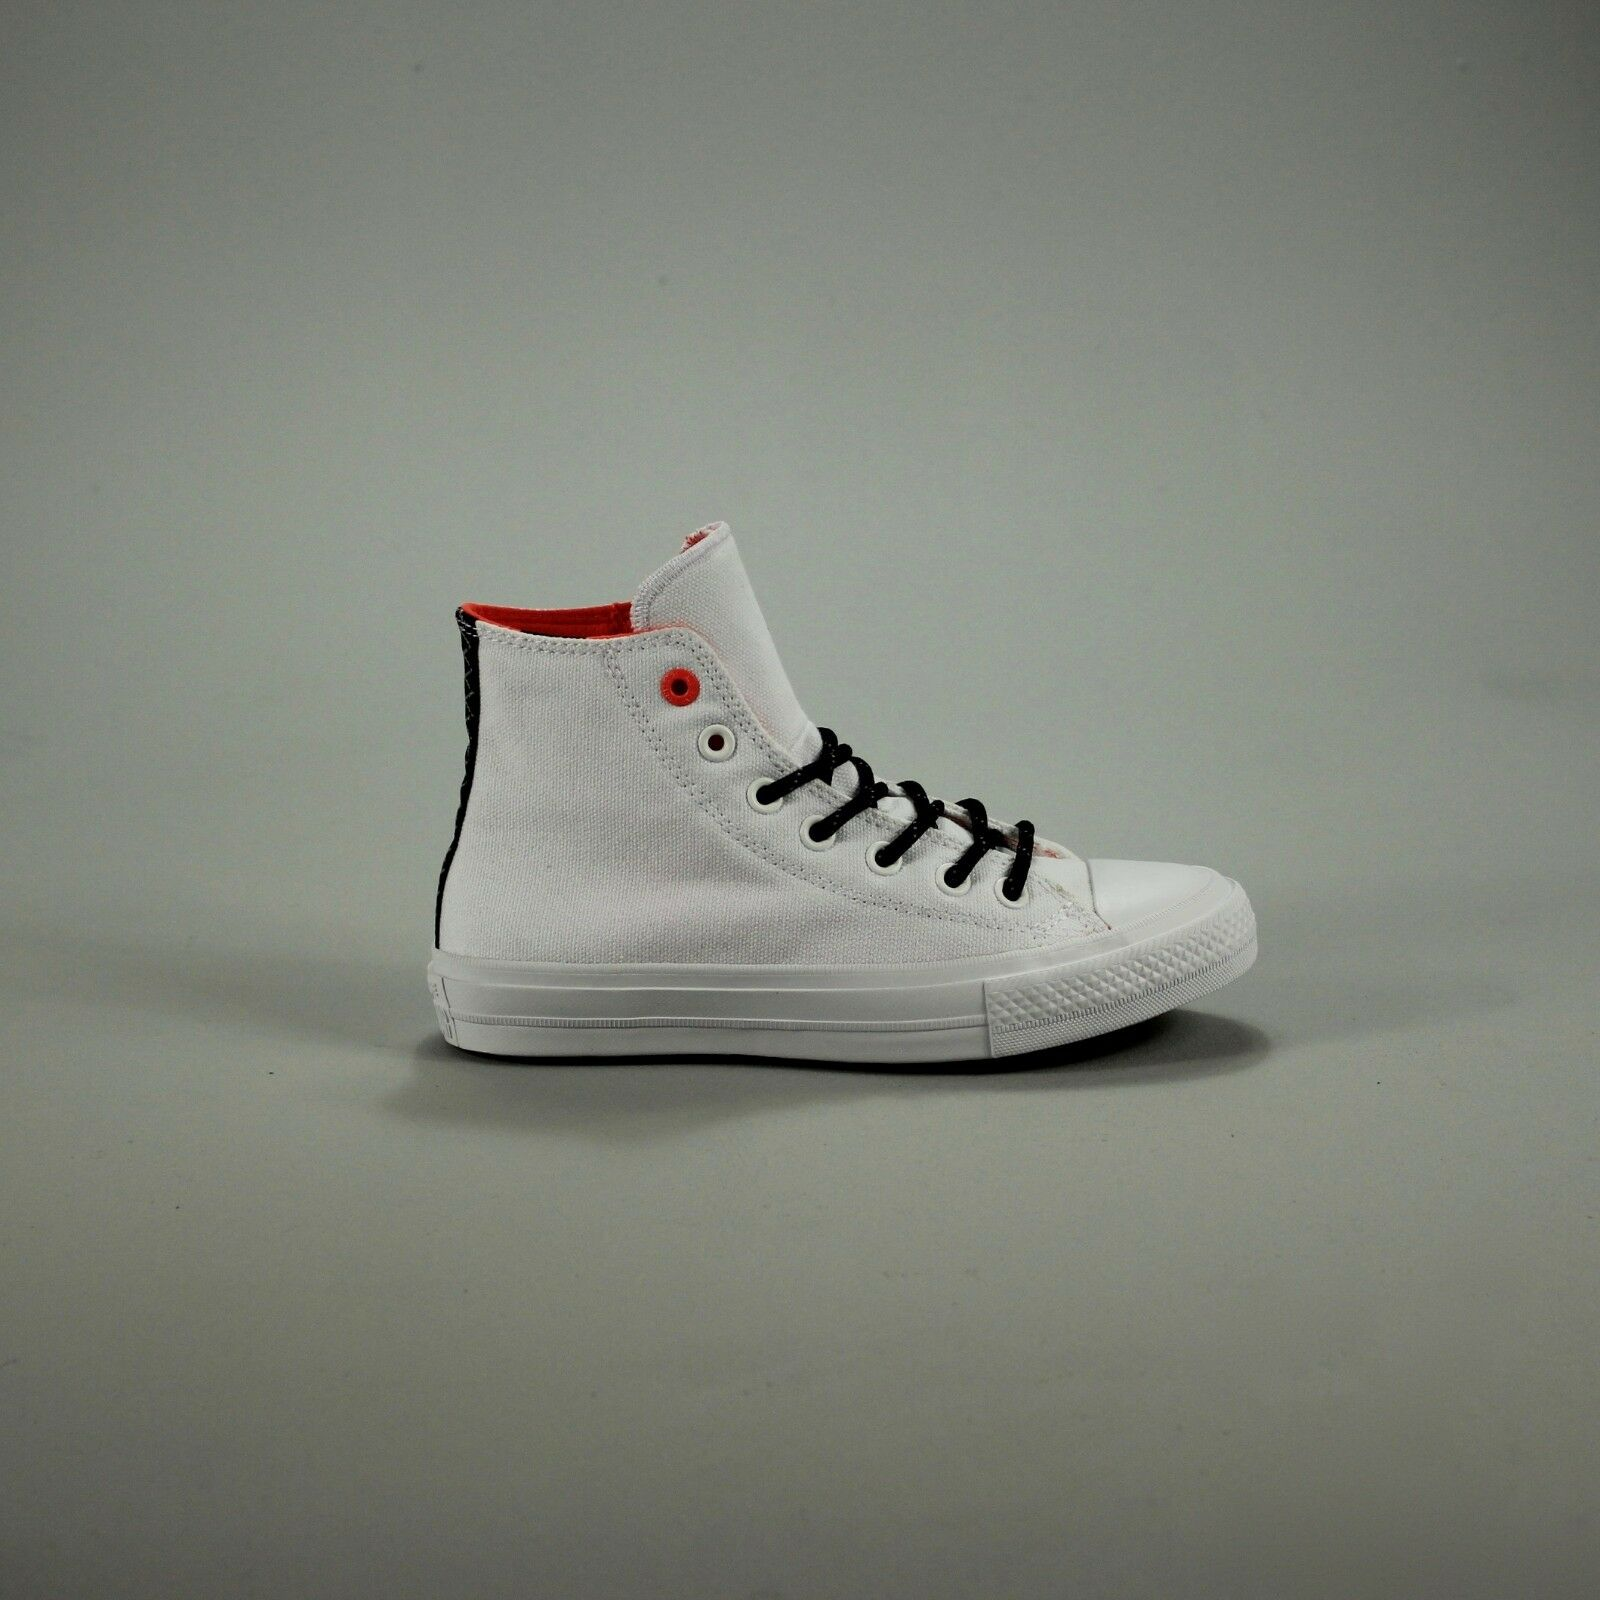 Details about Converse Chuck Taylor II Hi Trainers New in box Size UK size 4,5,6,7,9.